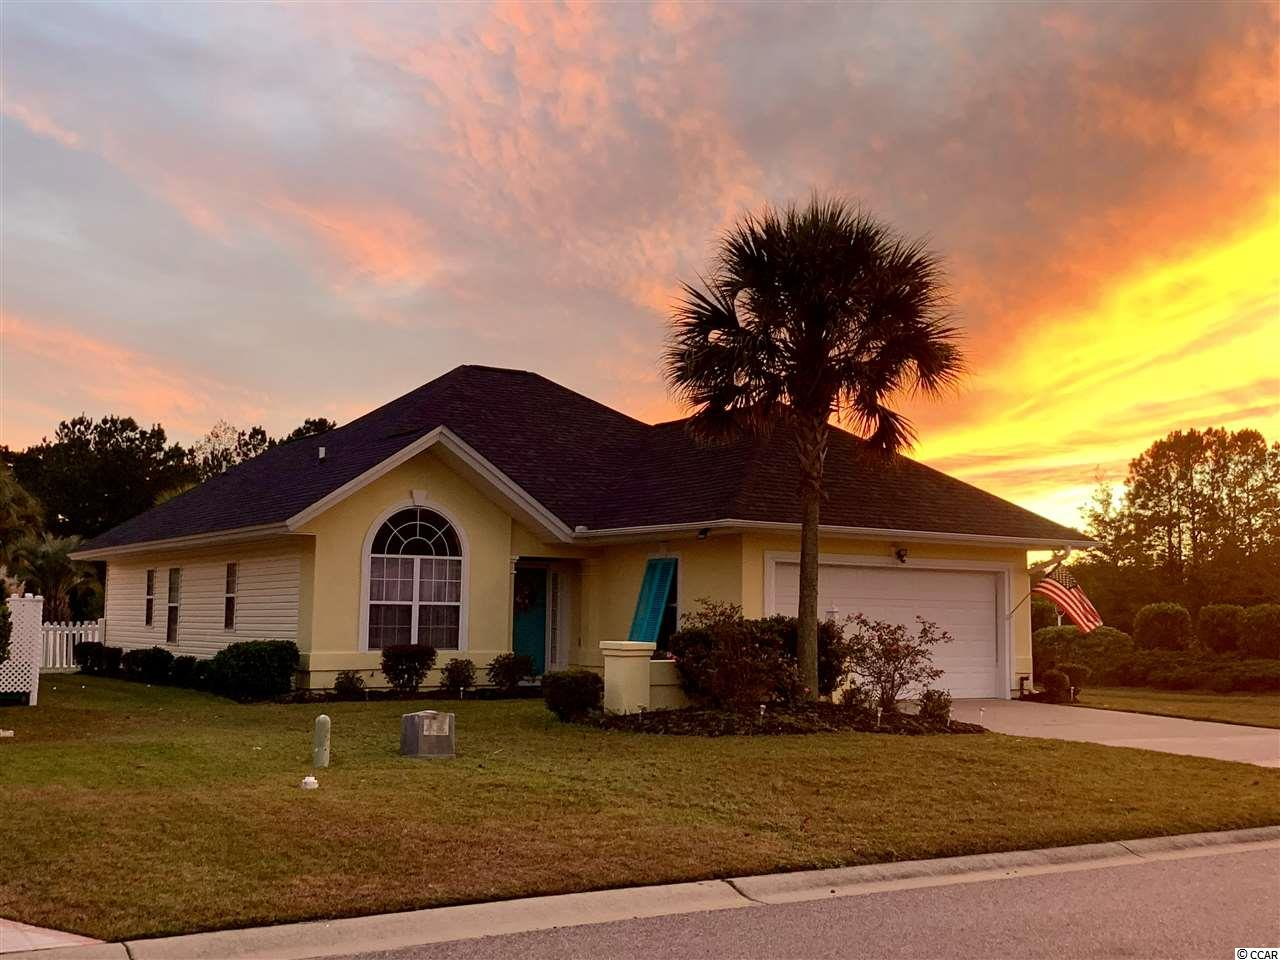 One of hottest selling locations on the Grand Strand!! 3 Bed/2Bath house located 3 miles from ocean, close to famous Murrells Inlet Marshwalk, Brookgreen Gardens, and Huntington Beach State Park.  Home features new granite countertops, new Pergo wood floors in living areas, new fenced in yard, freshly painted stucco with a relaxing view of a fountain pond. Home is located in Cypress Keyes where the HOA includes cable, trash pick up, beautiful pool and clubhouse.  Homes in this neighborhood sell quickly!  3 grocery stores in less than a mile, close to many restaurants and shopping.